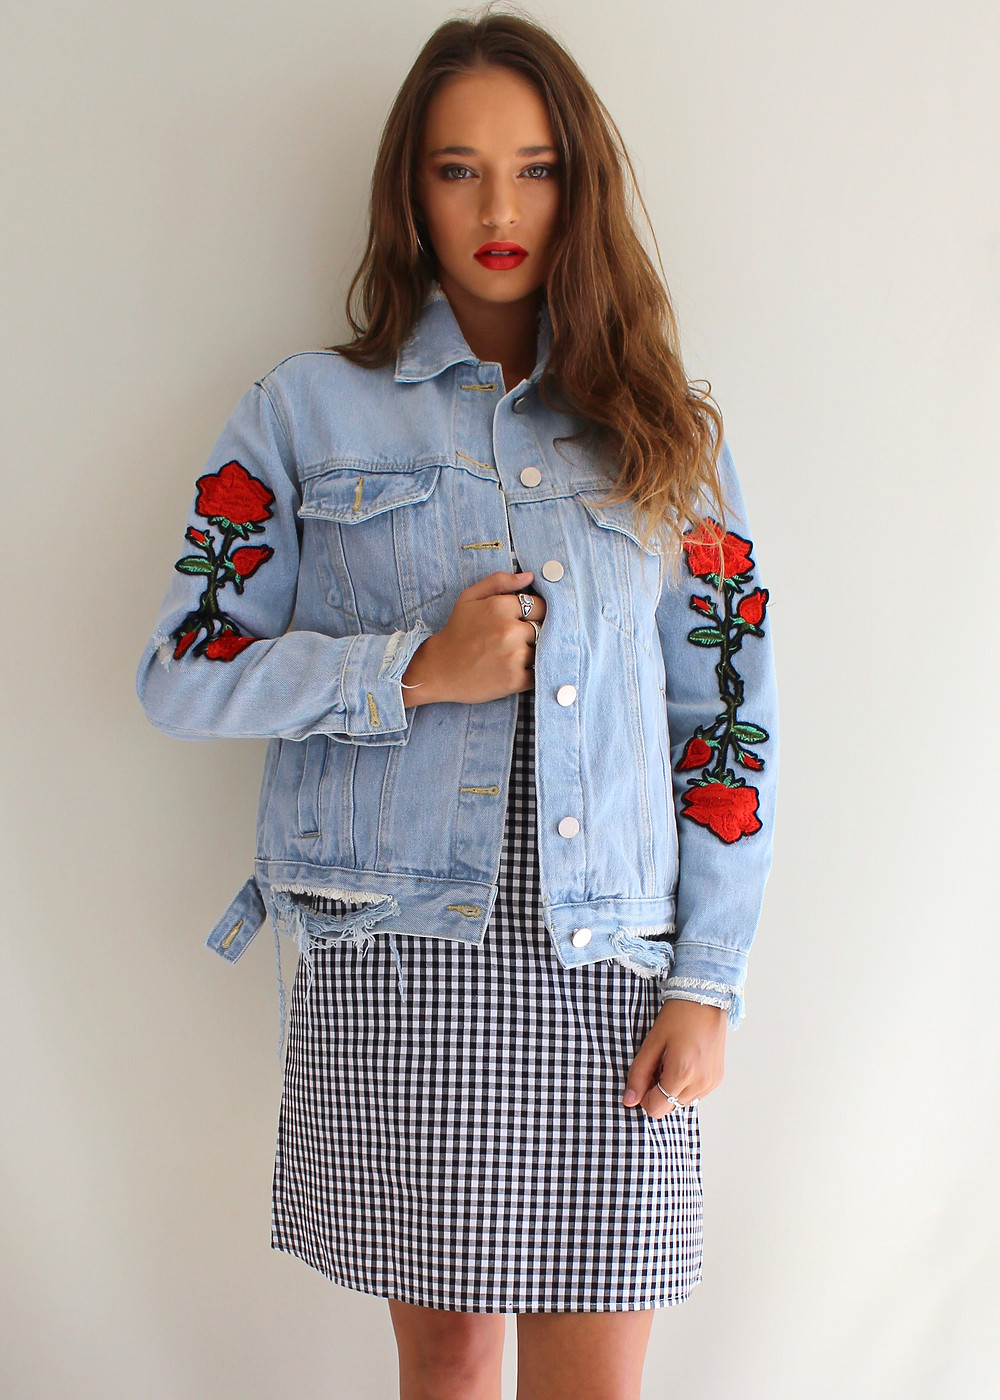 Denim Jacket with Rose Embroidery from Shine Boutiques Sunshine Coast